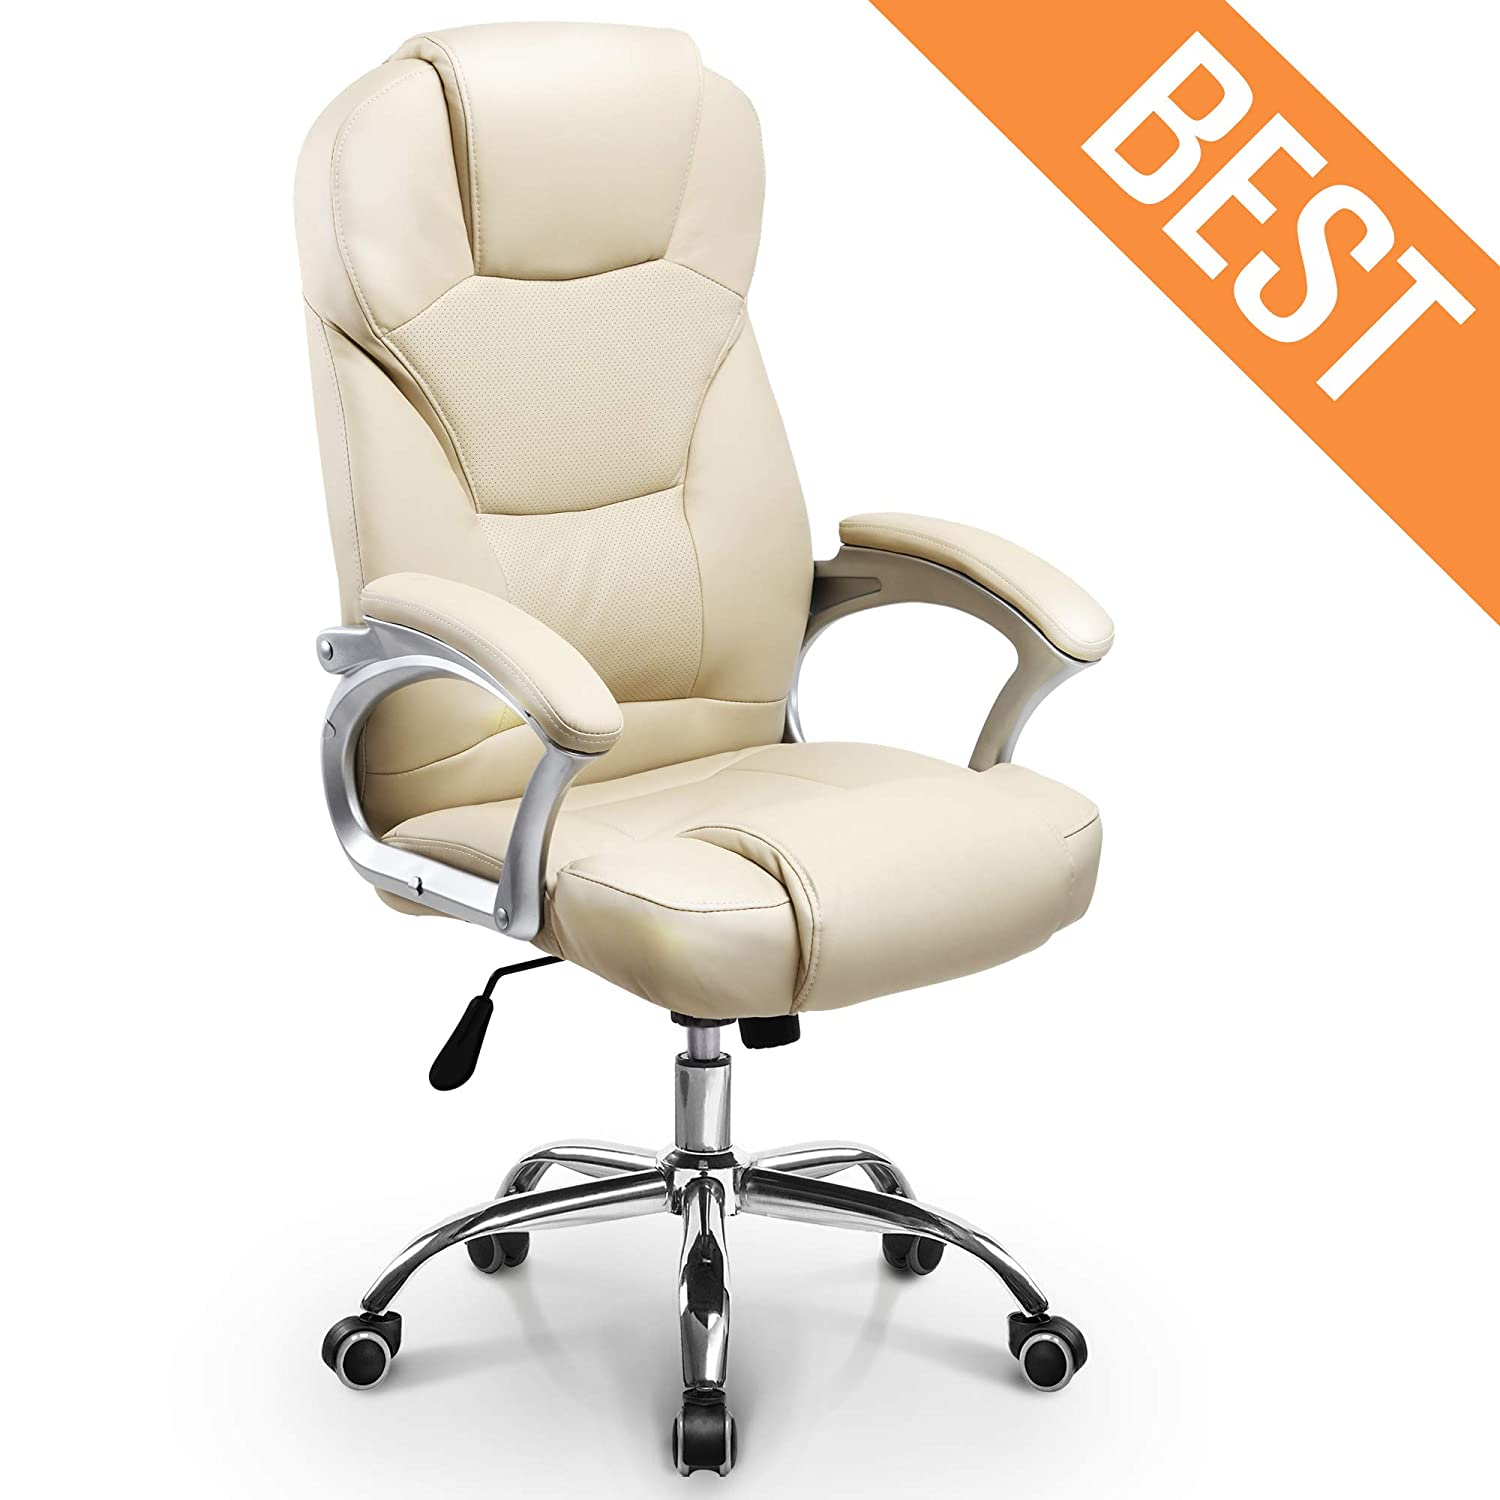 Neo Chair Office Chair Computer Desk Chair Gaming – Ergonomic High Back Cushion Lumbar Support with Wheels Comfortable White Leather Racing Seat Adjustable Swivel Rolling Home Executive